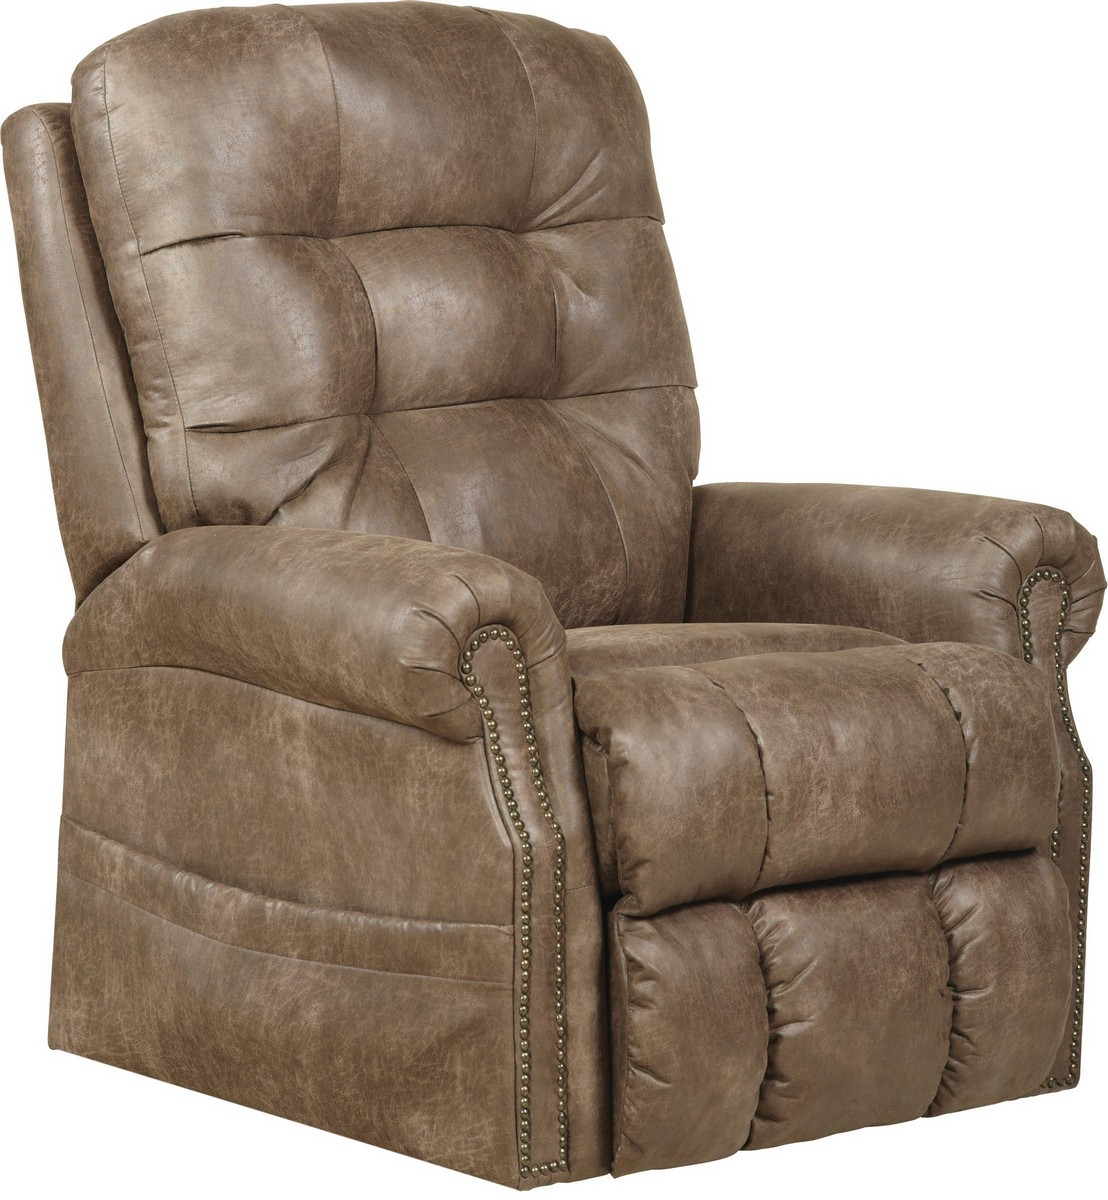 lay flat recliner chairs amazon chair slipcovers catnapper ramsey power lift with heat